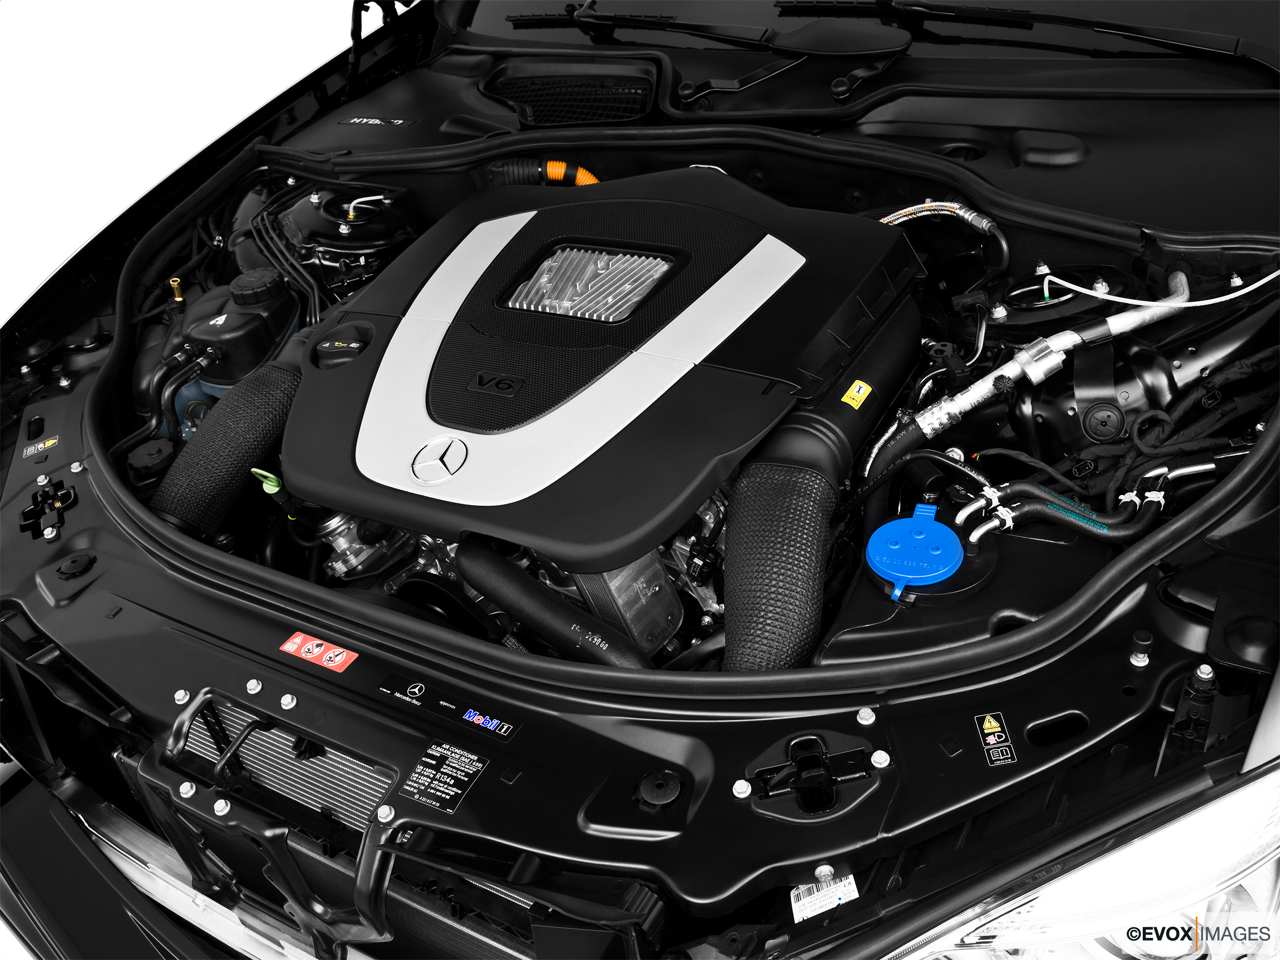 2010 Mercedes-Benz S-Class Hybrid S400 Engine.